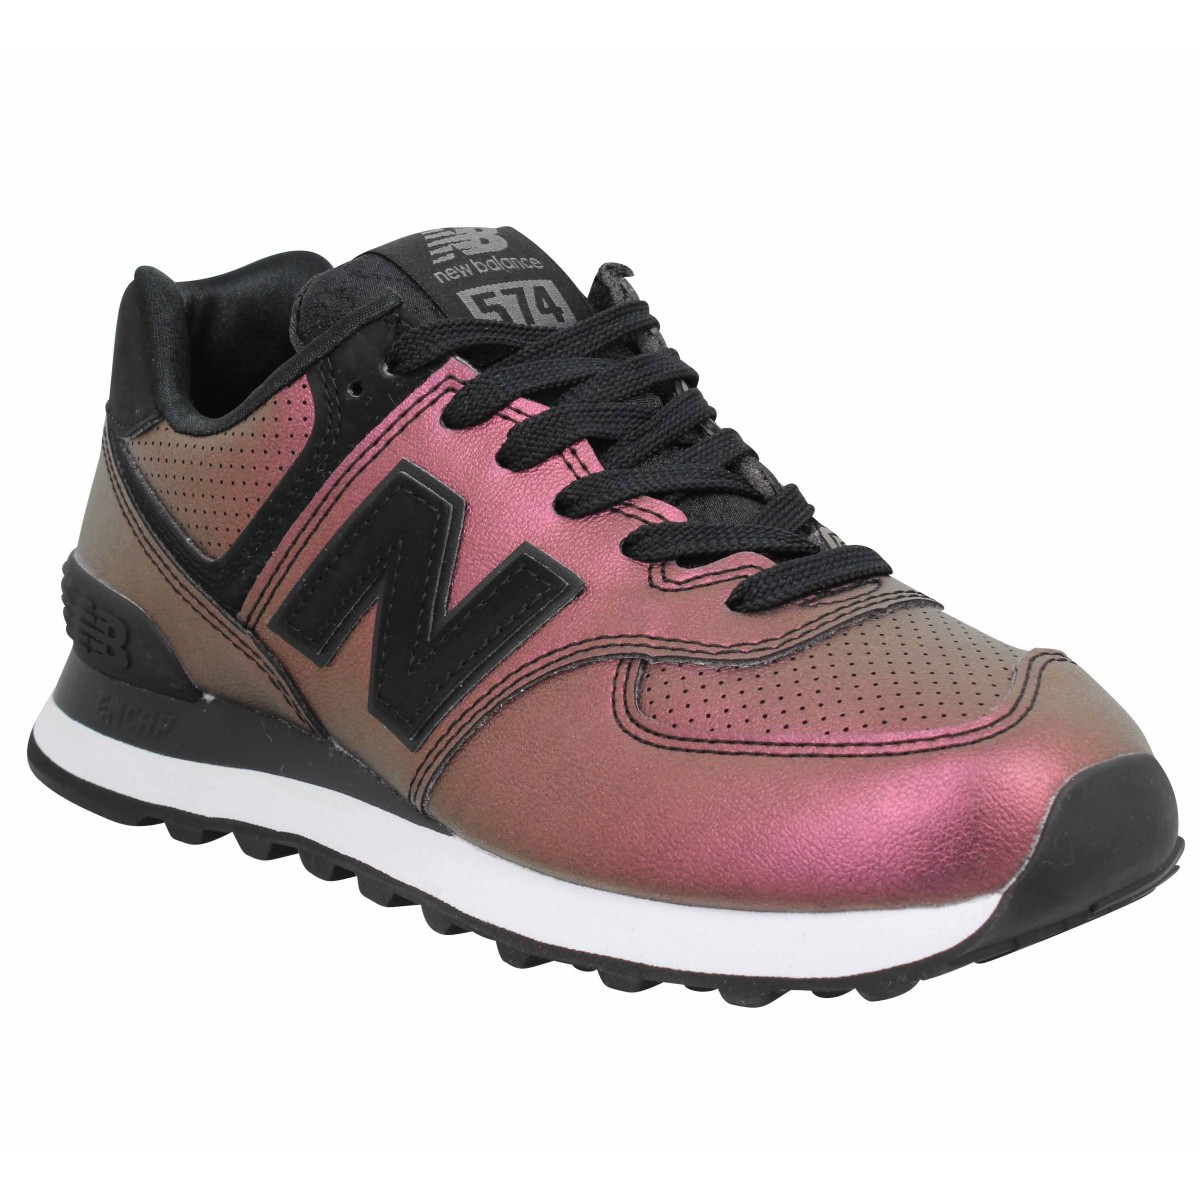 Baskets NEW BALANCE 574 simili Femme Rose